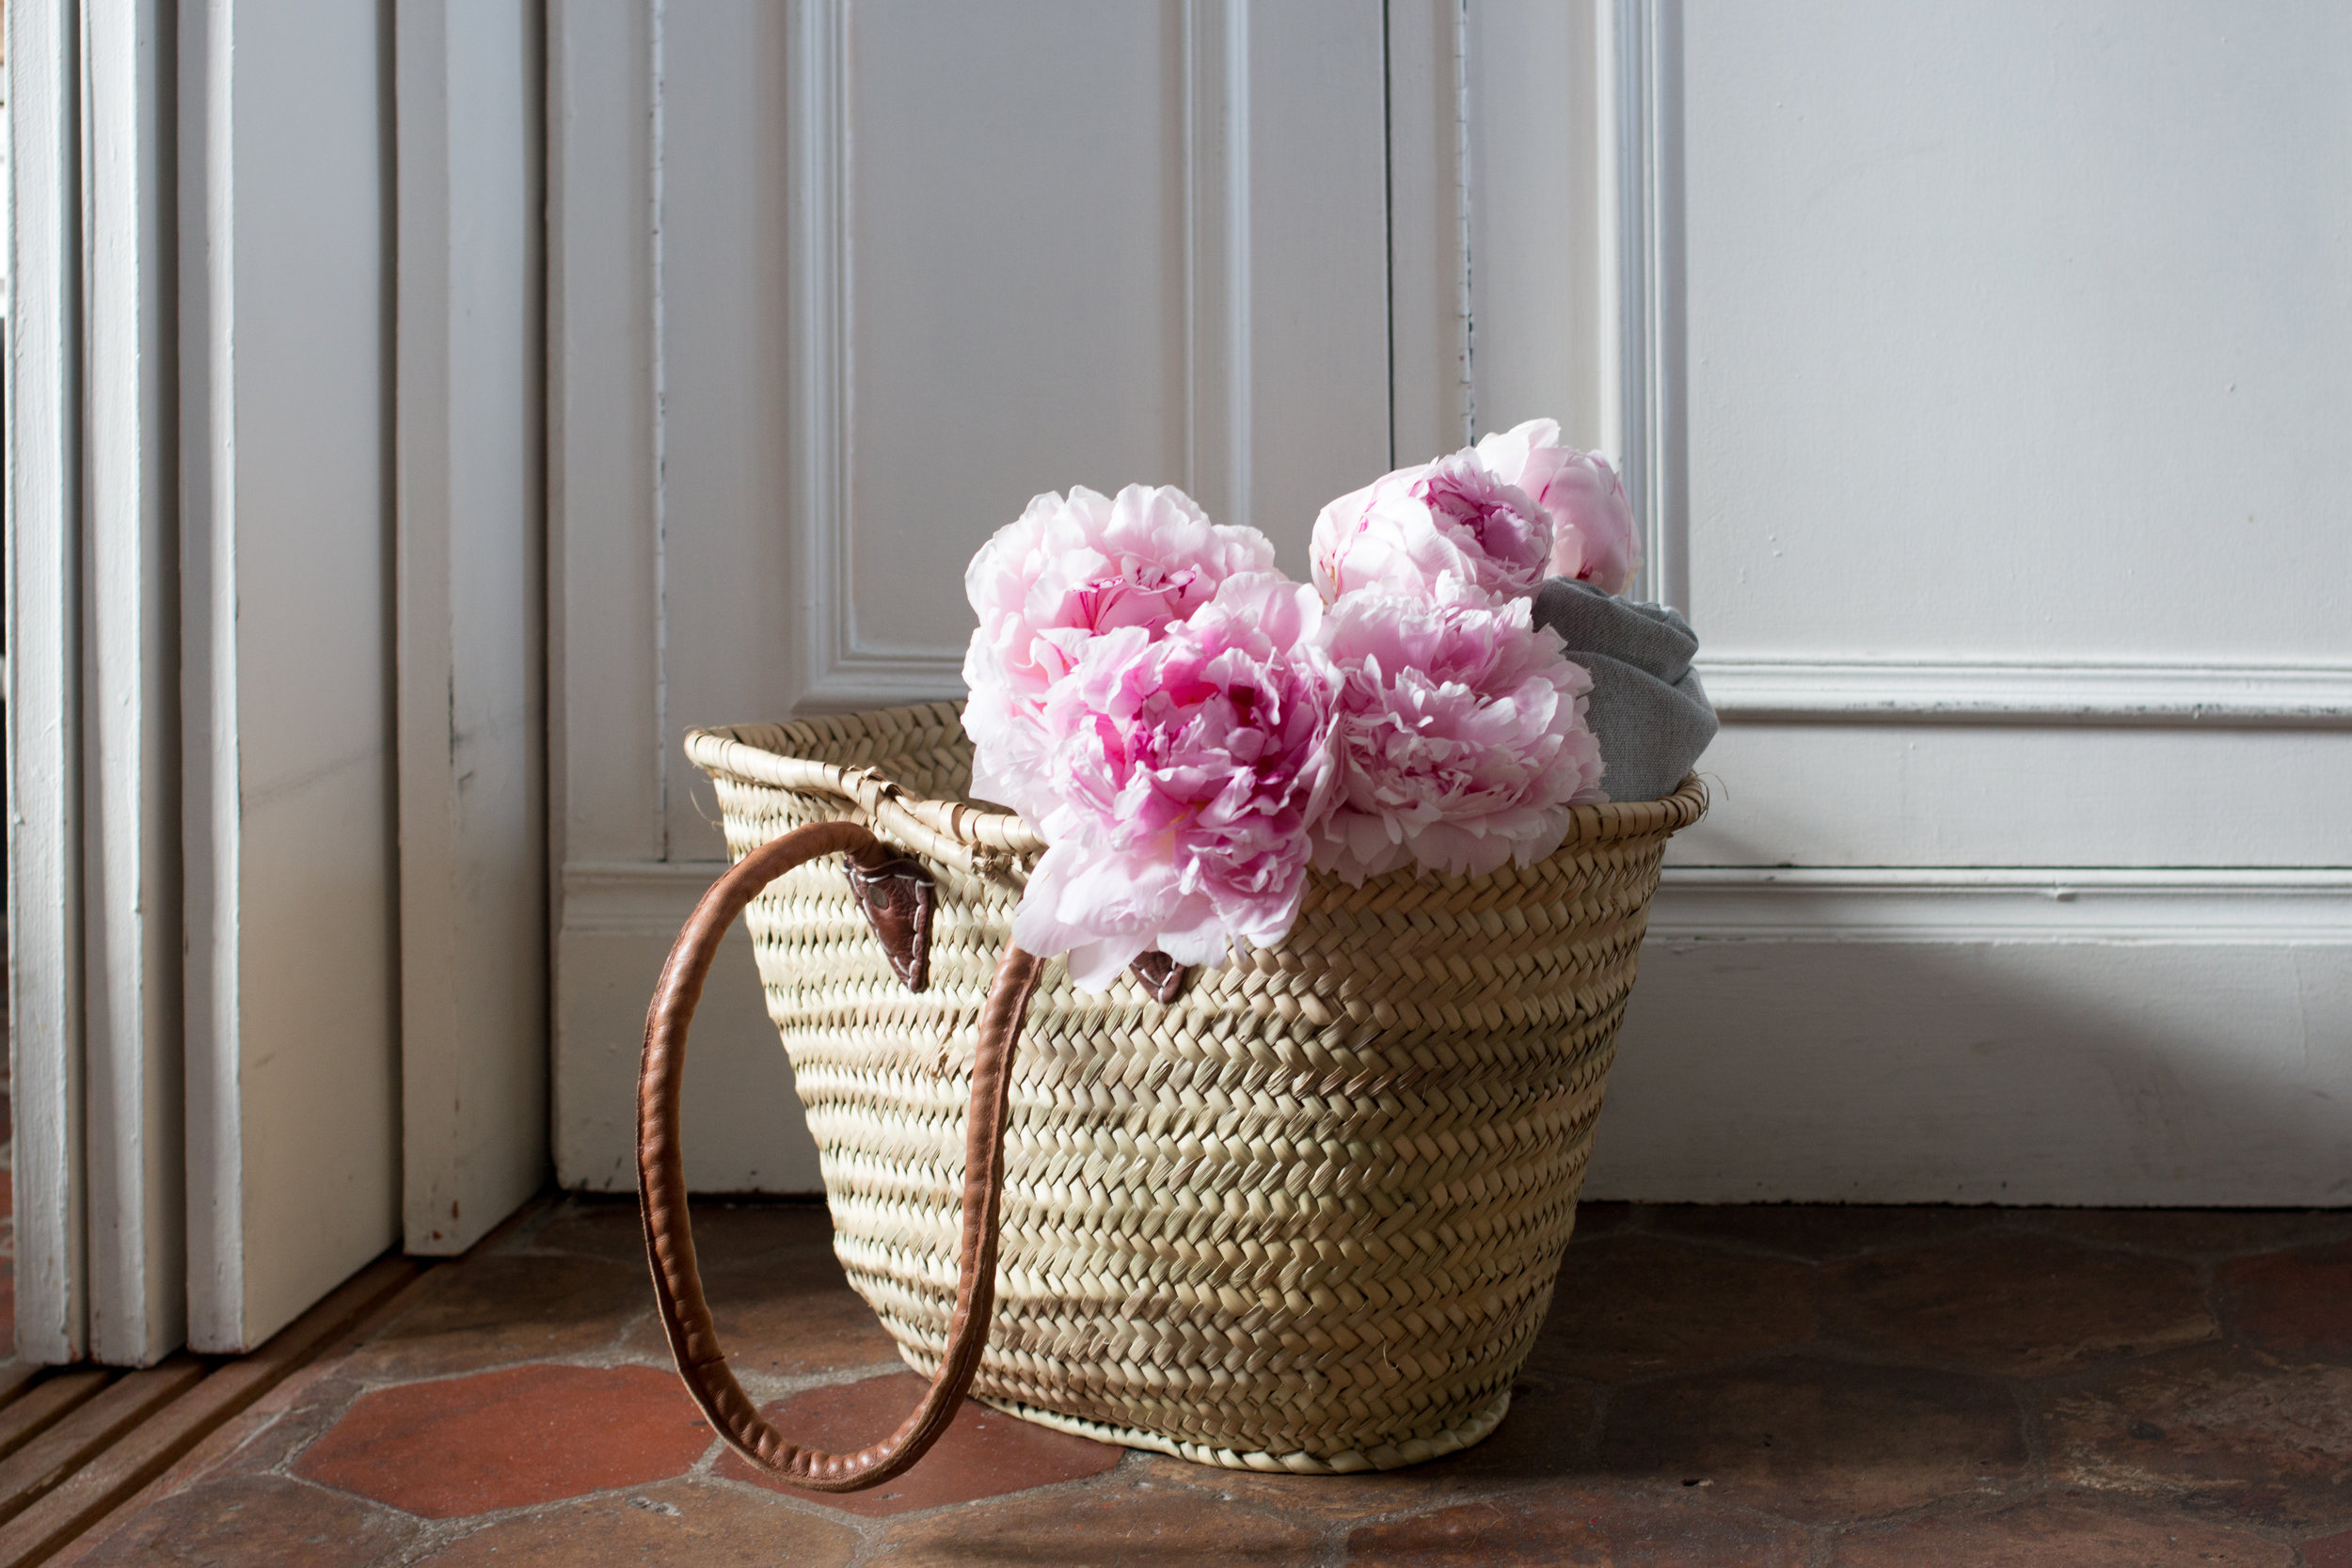 paris pink peonies via everyday parisian paris in the summer rebecca plotnick